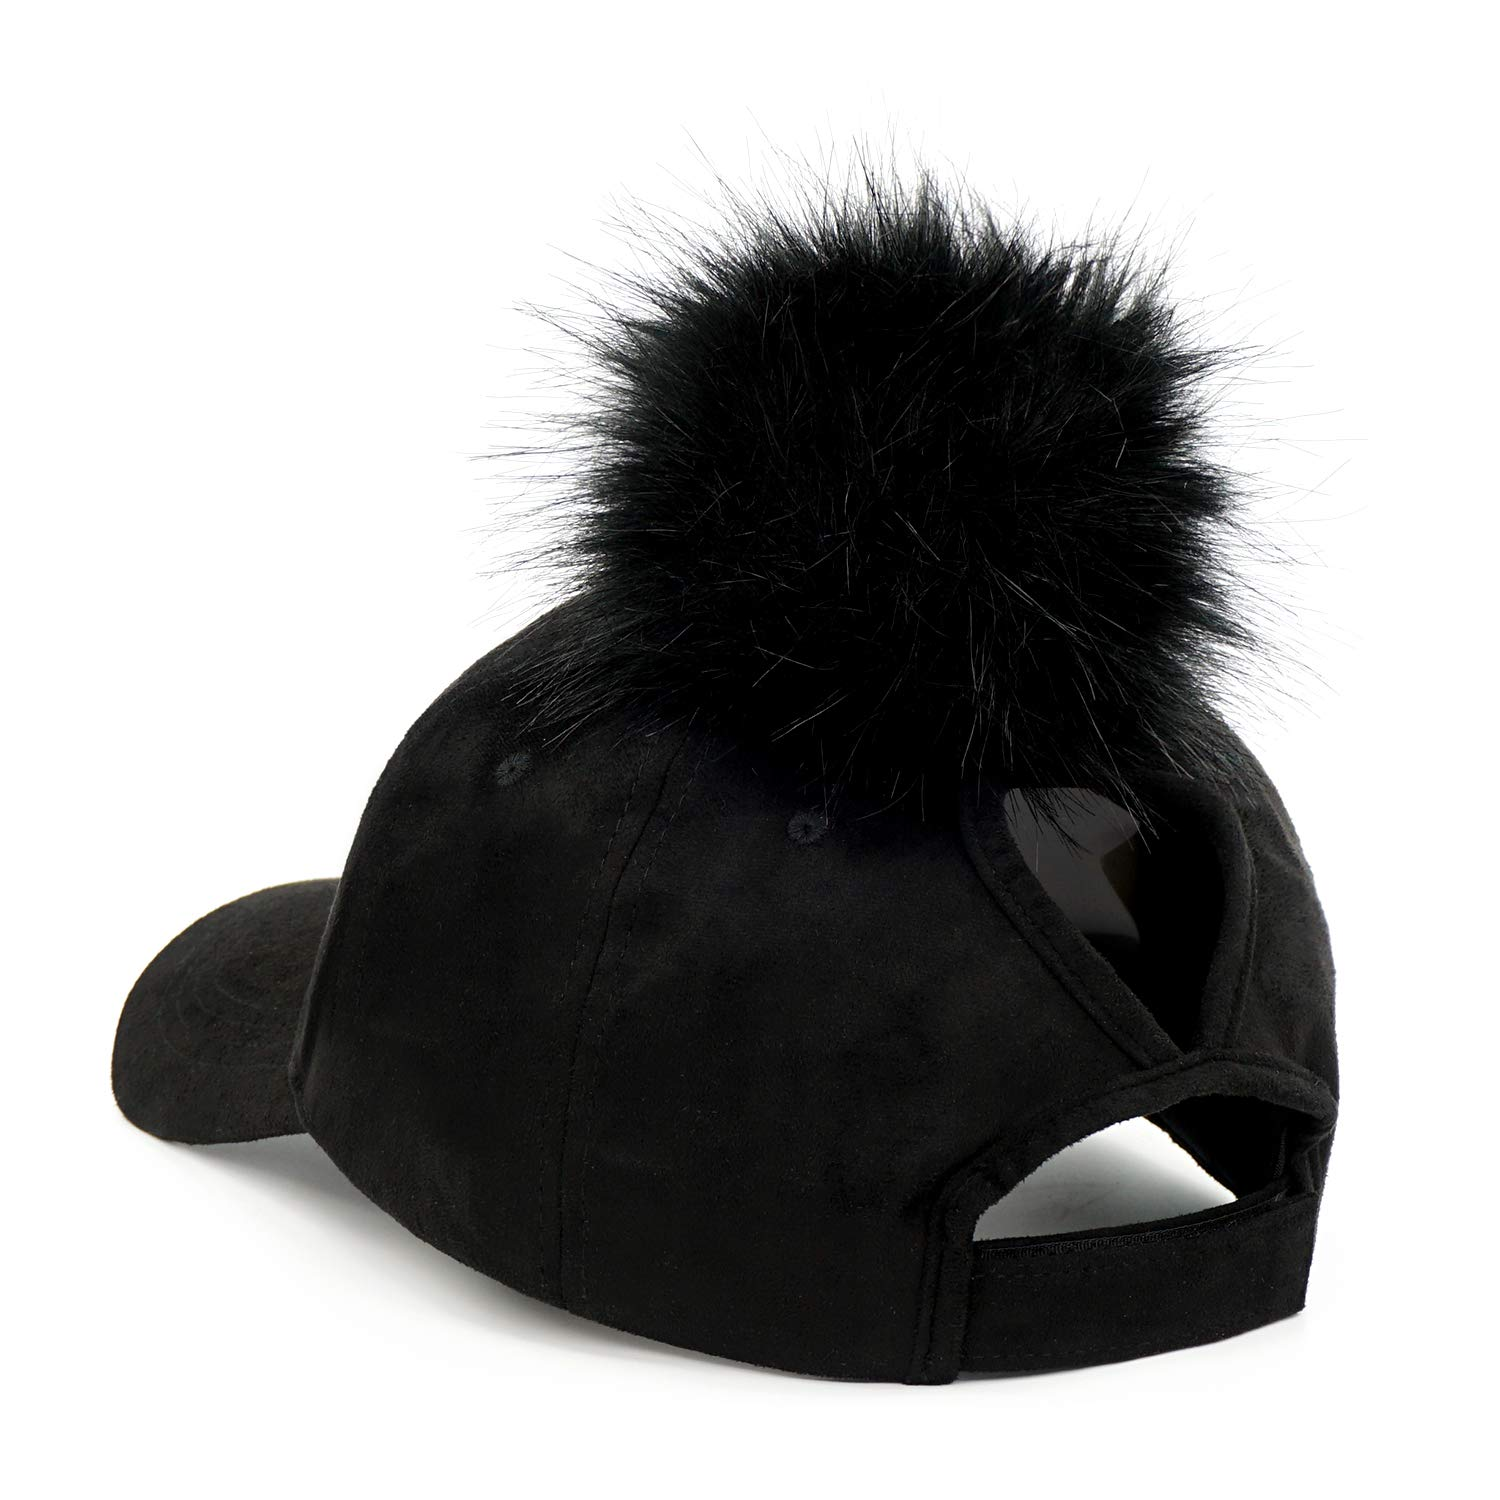 657144a44 B.J Ladies Adjustable Suede Baseball Cap Hip-Hop Hat Faux Fur Pom ...